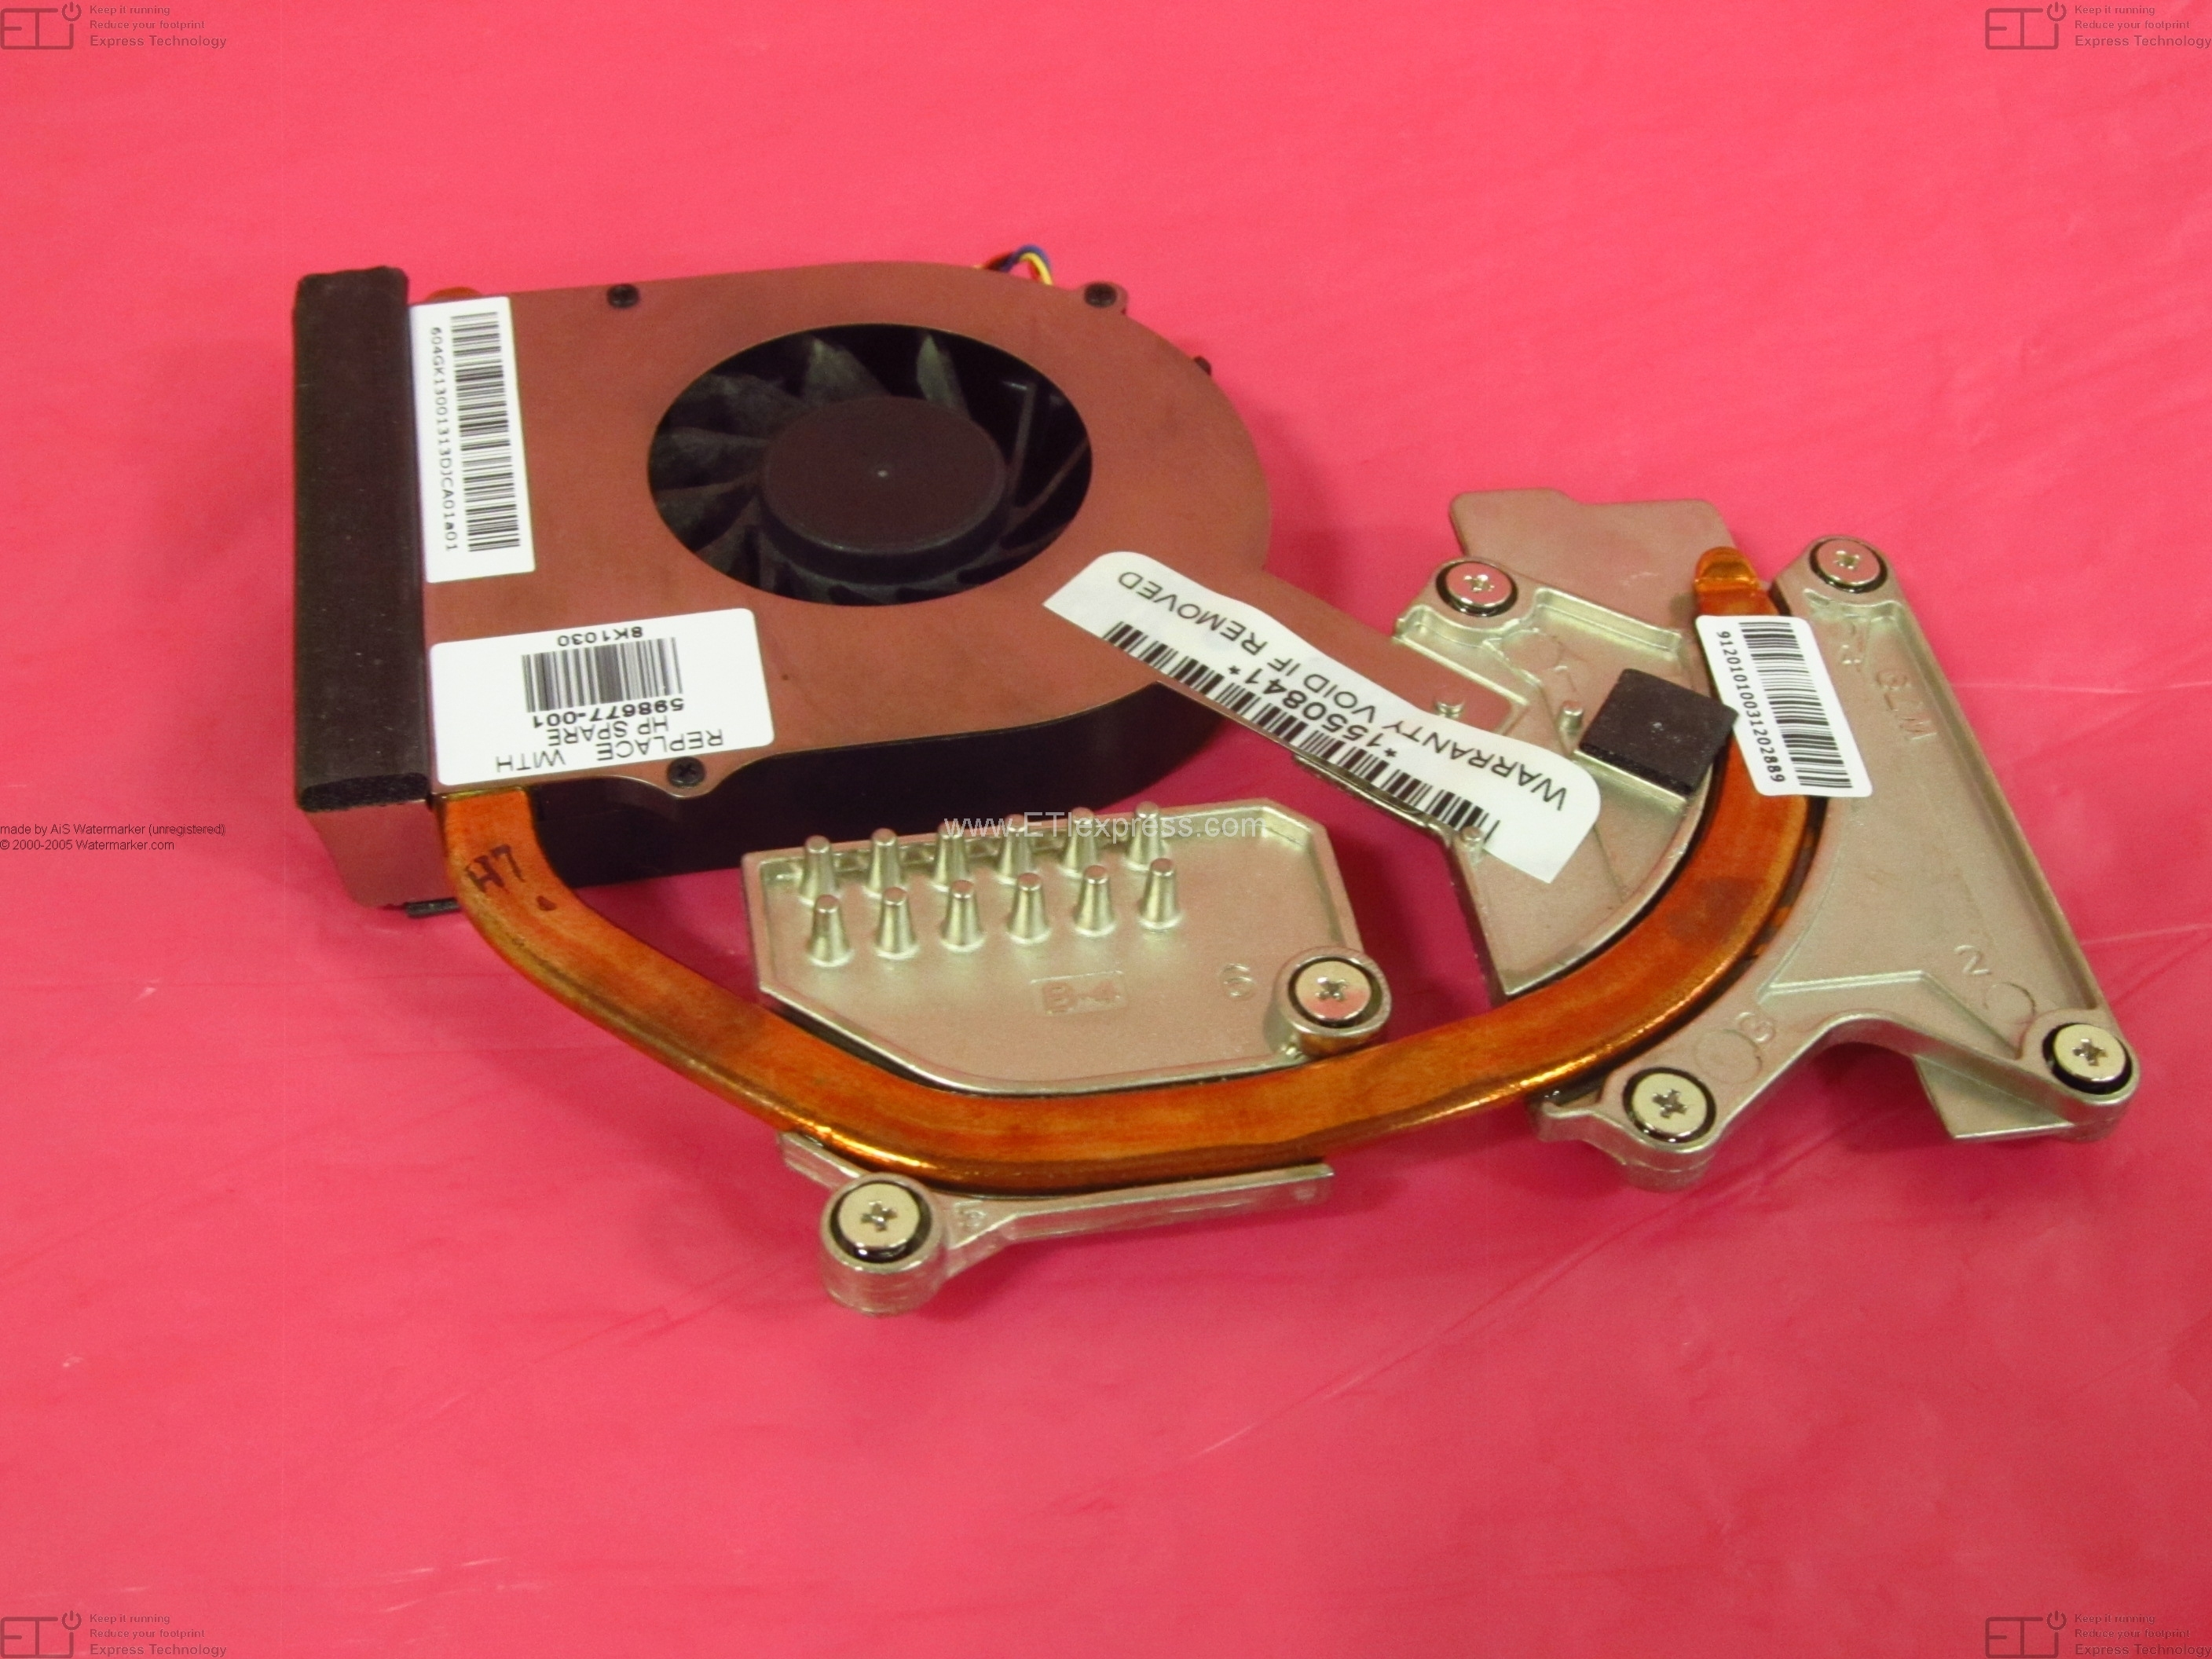 456606-001 Hewlett-Packard 6820s Series CPU Heatsink